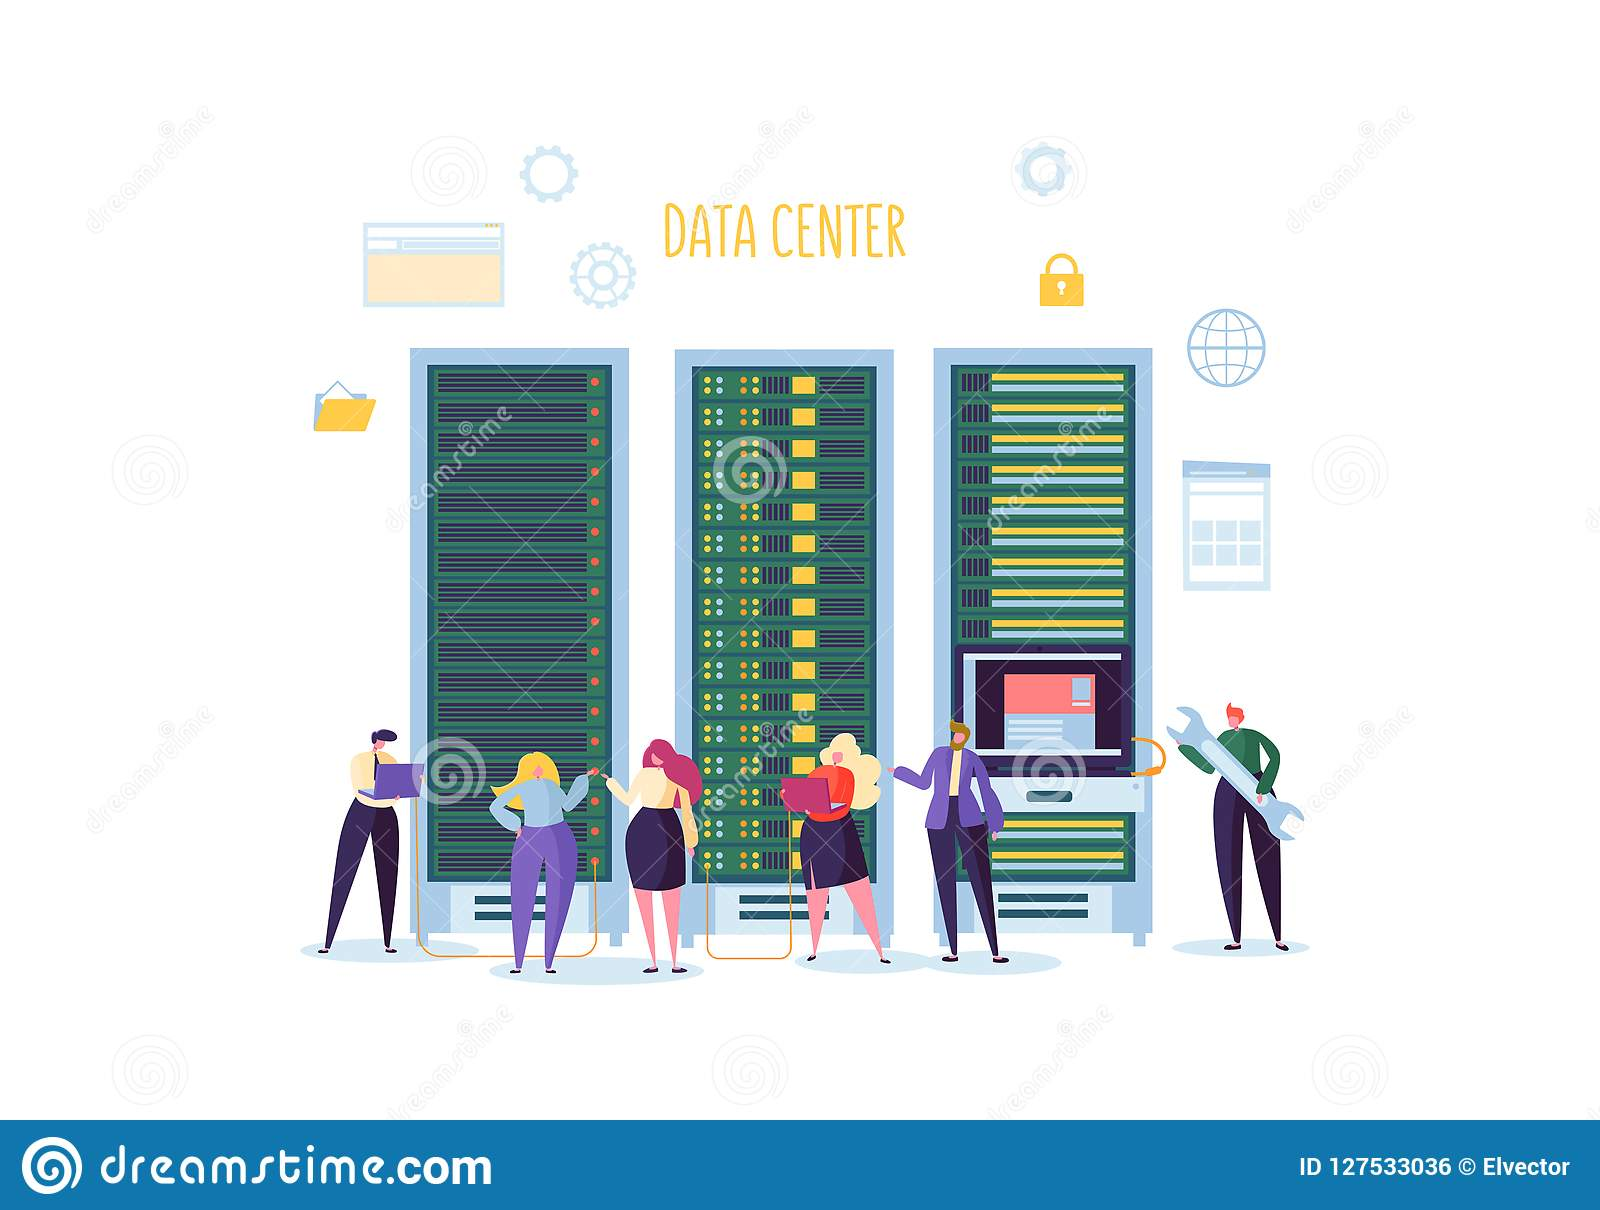 Data Center Technology Concept. Flat People Characters Engineers Working in Network Server Room. Web Hosting